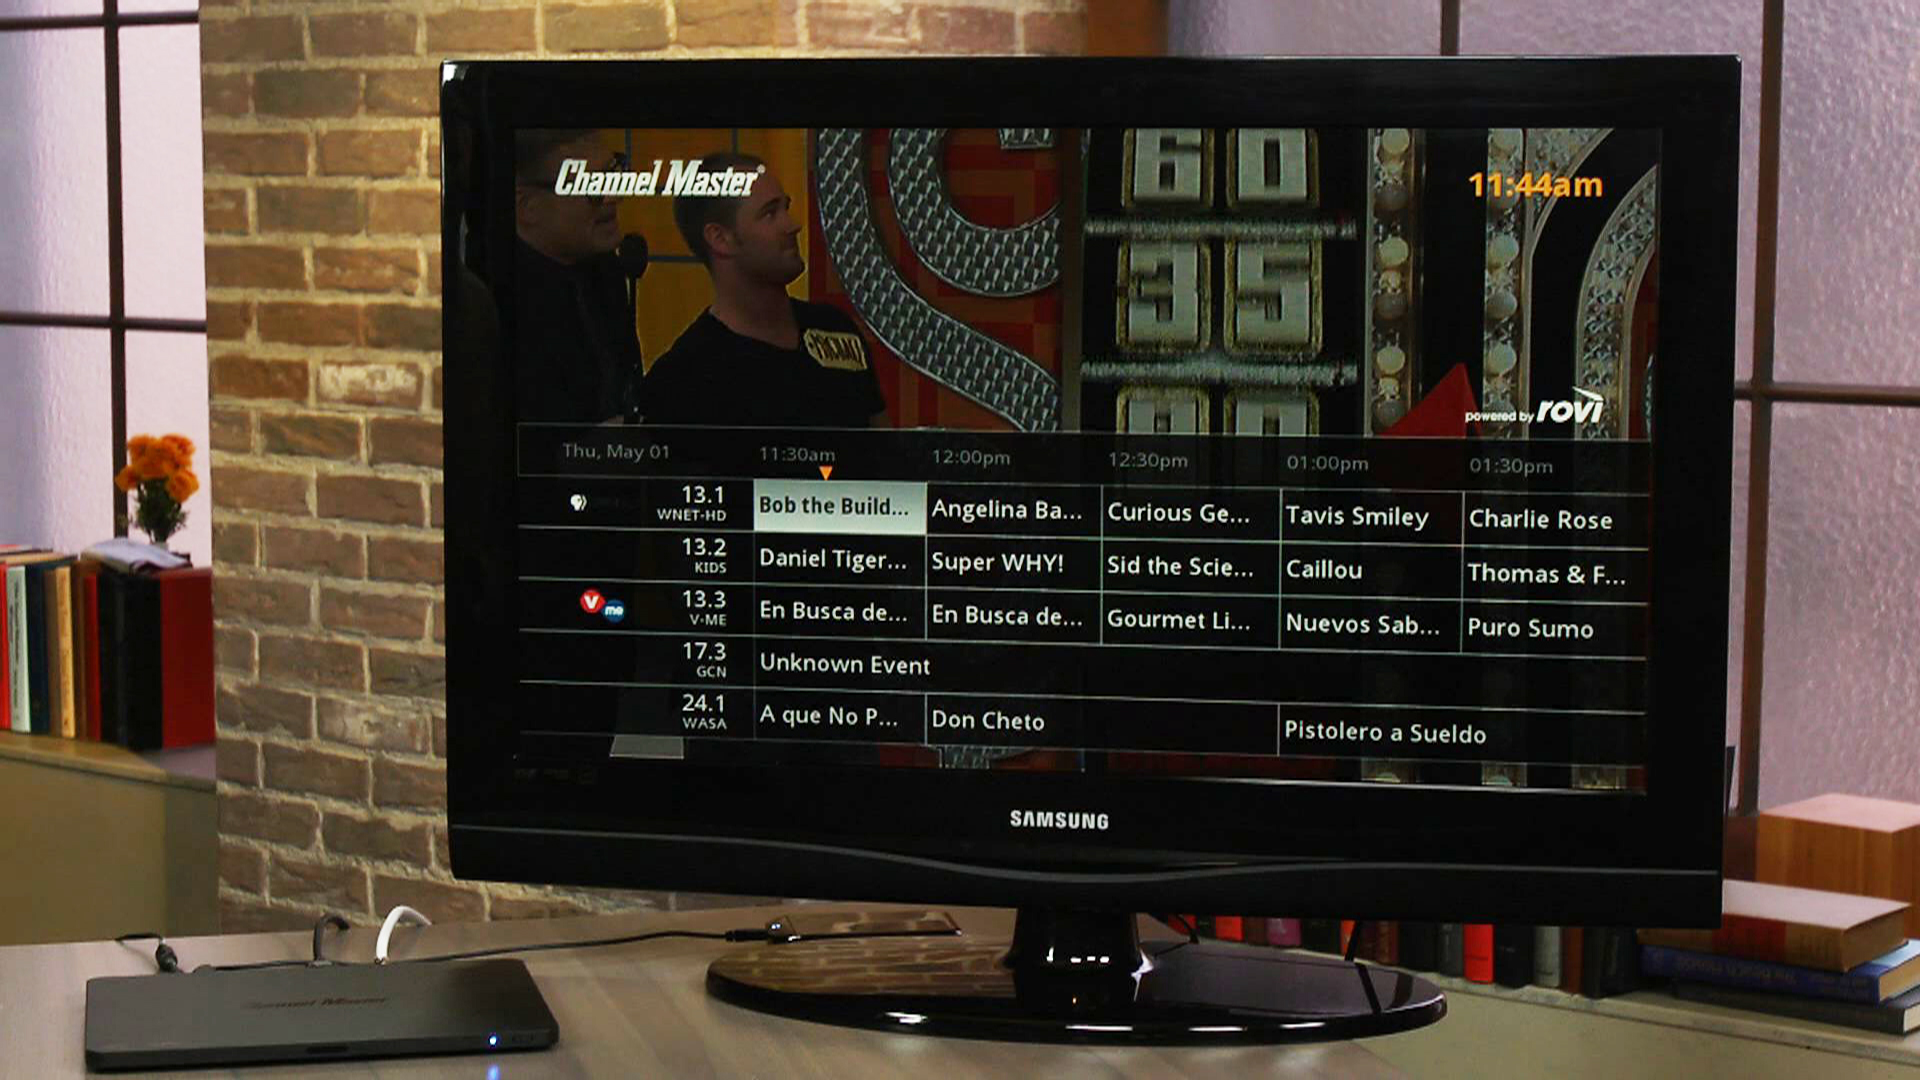 Video: Channel Master TV: Subscription-free, over-the-air recording that's just good enough